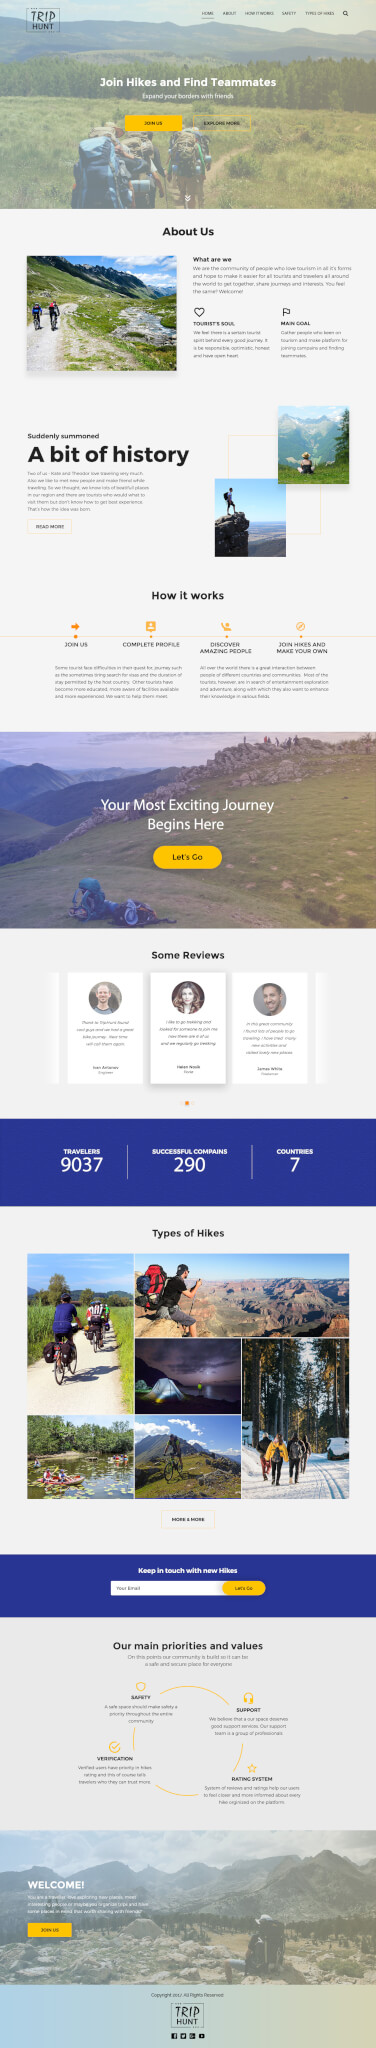 Landing page for TripHunt full